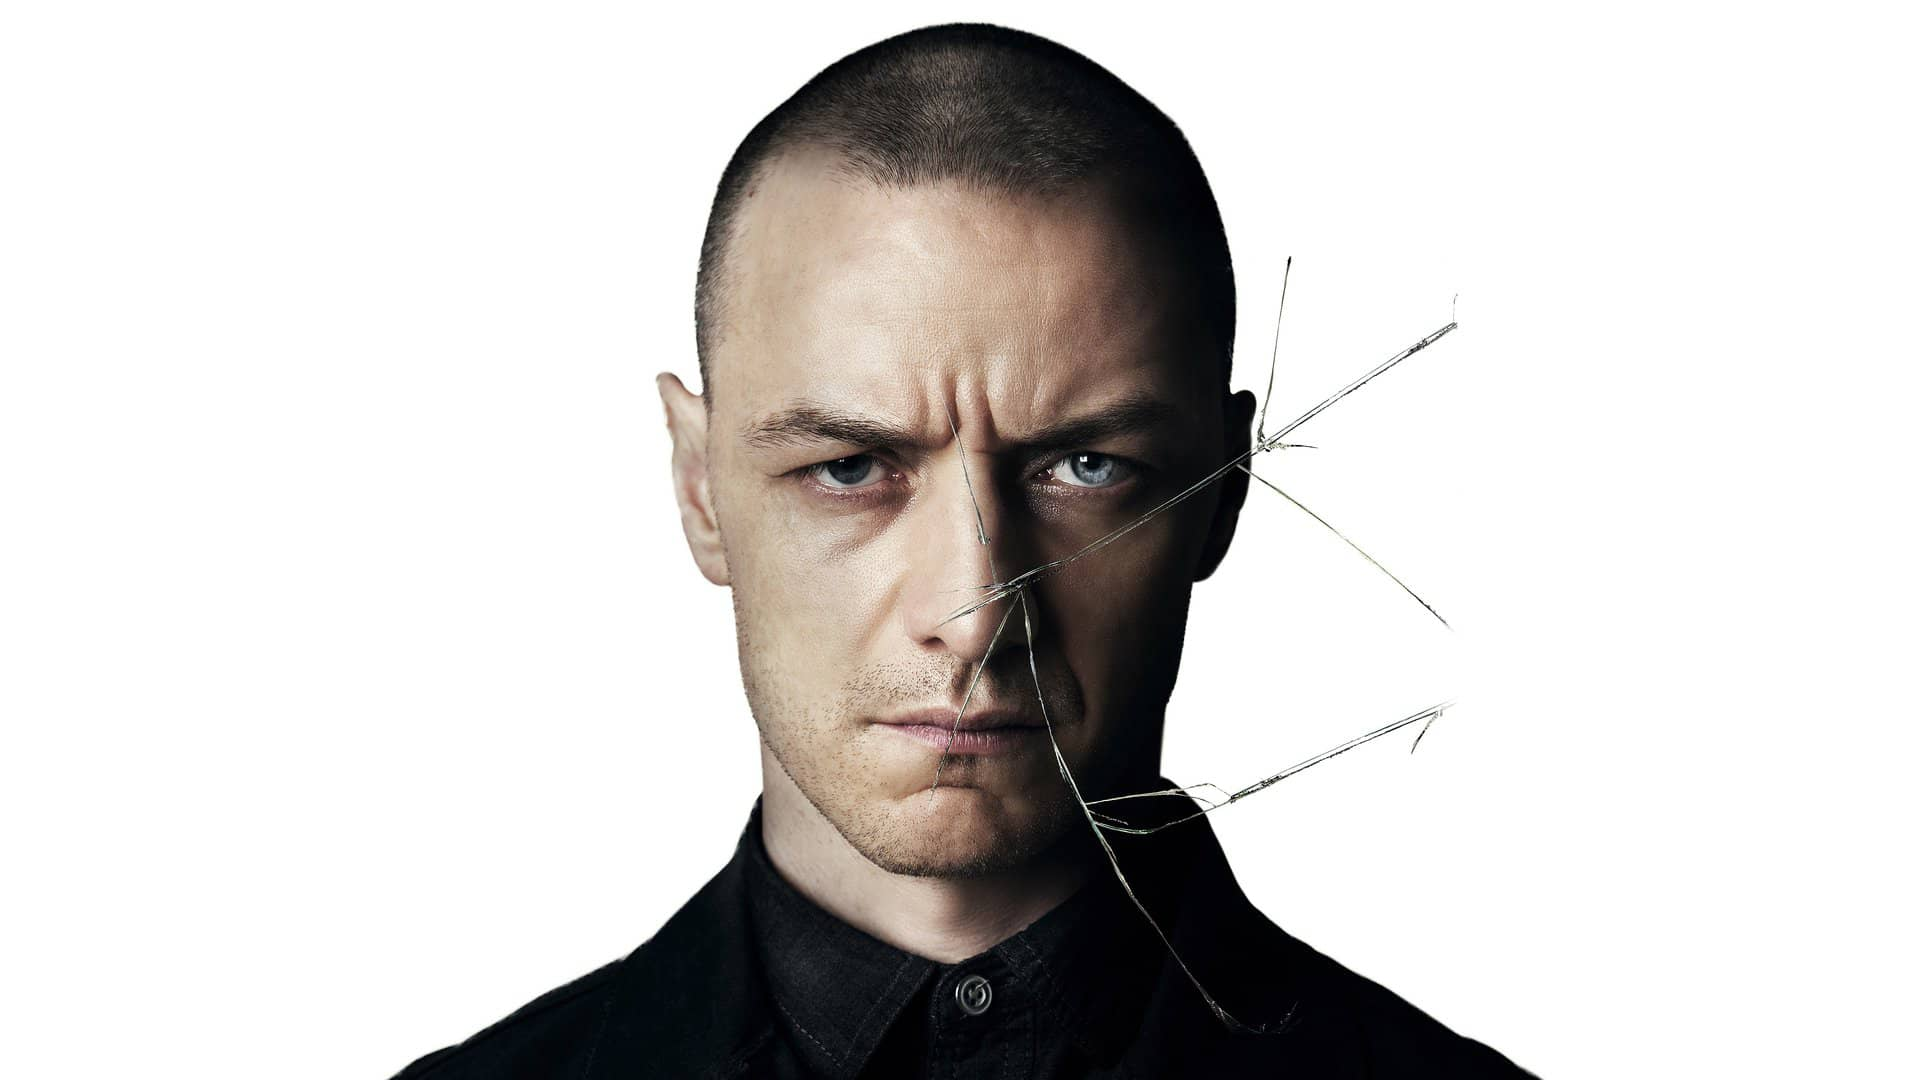 Split, il nuovo thriller di M. Night Shyamalan con un fantastico James McAvoy